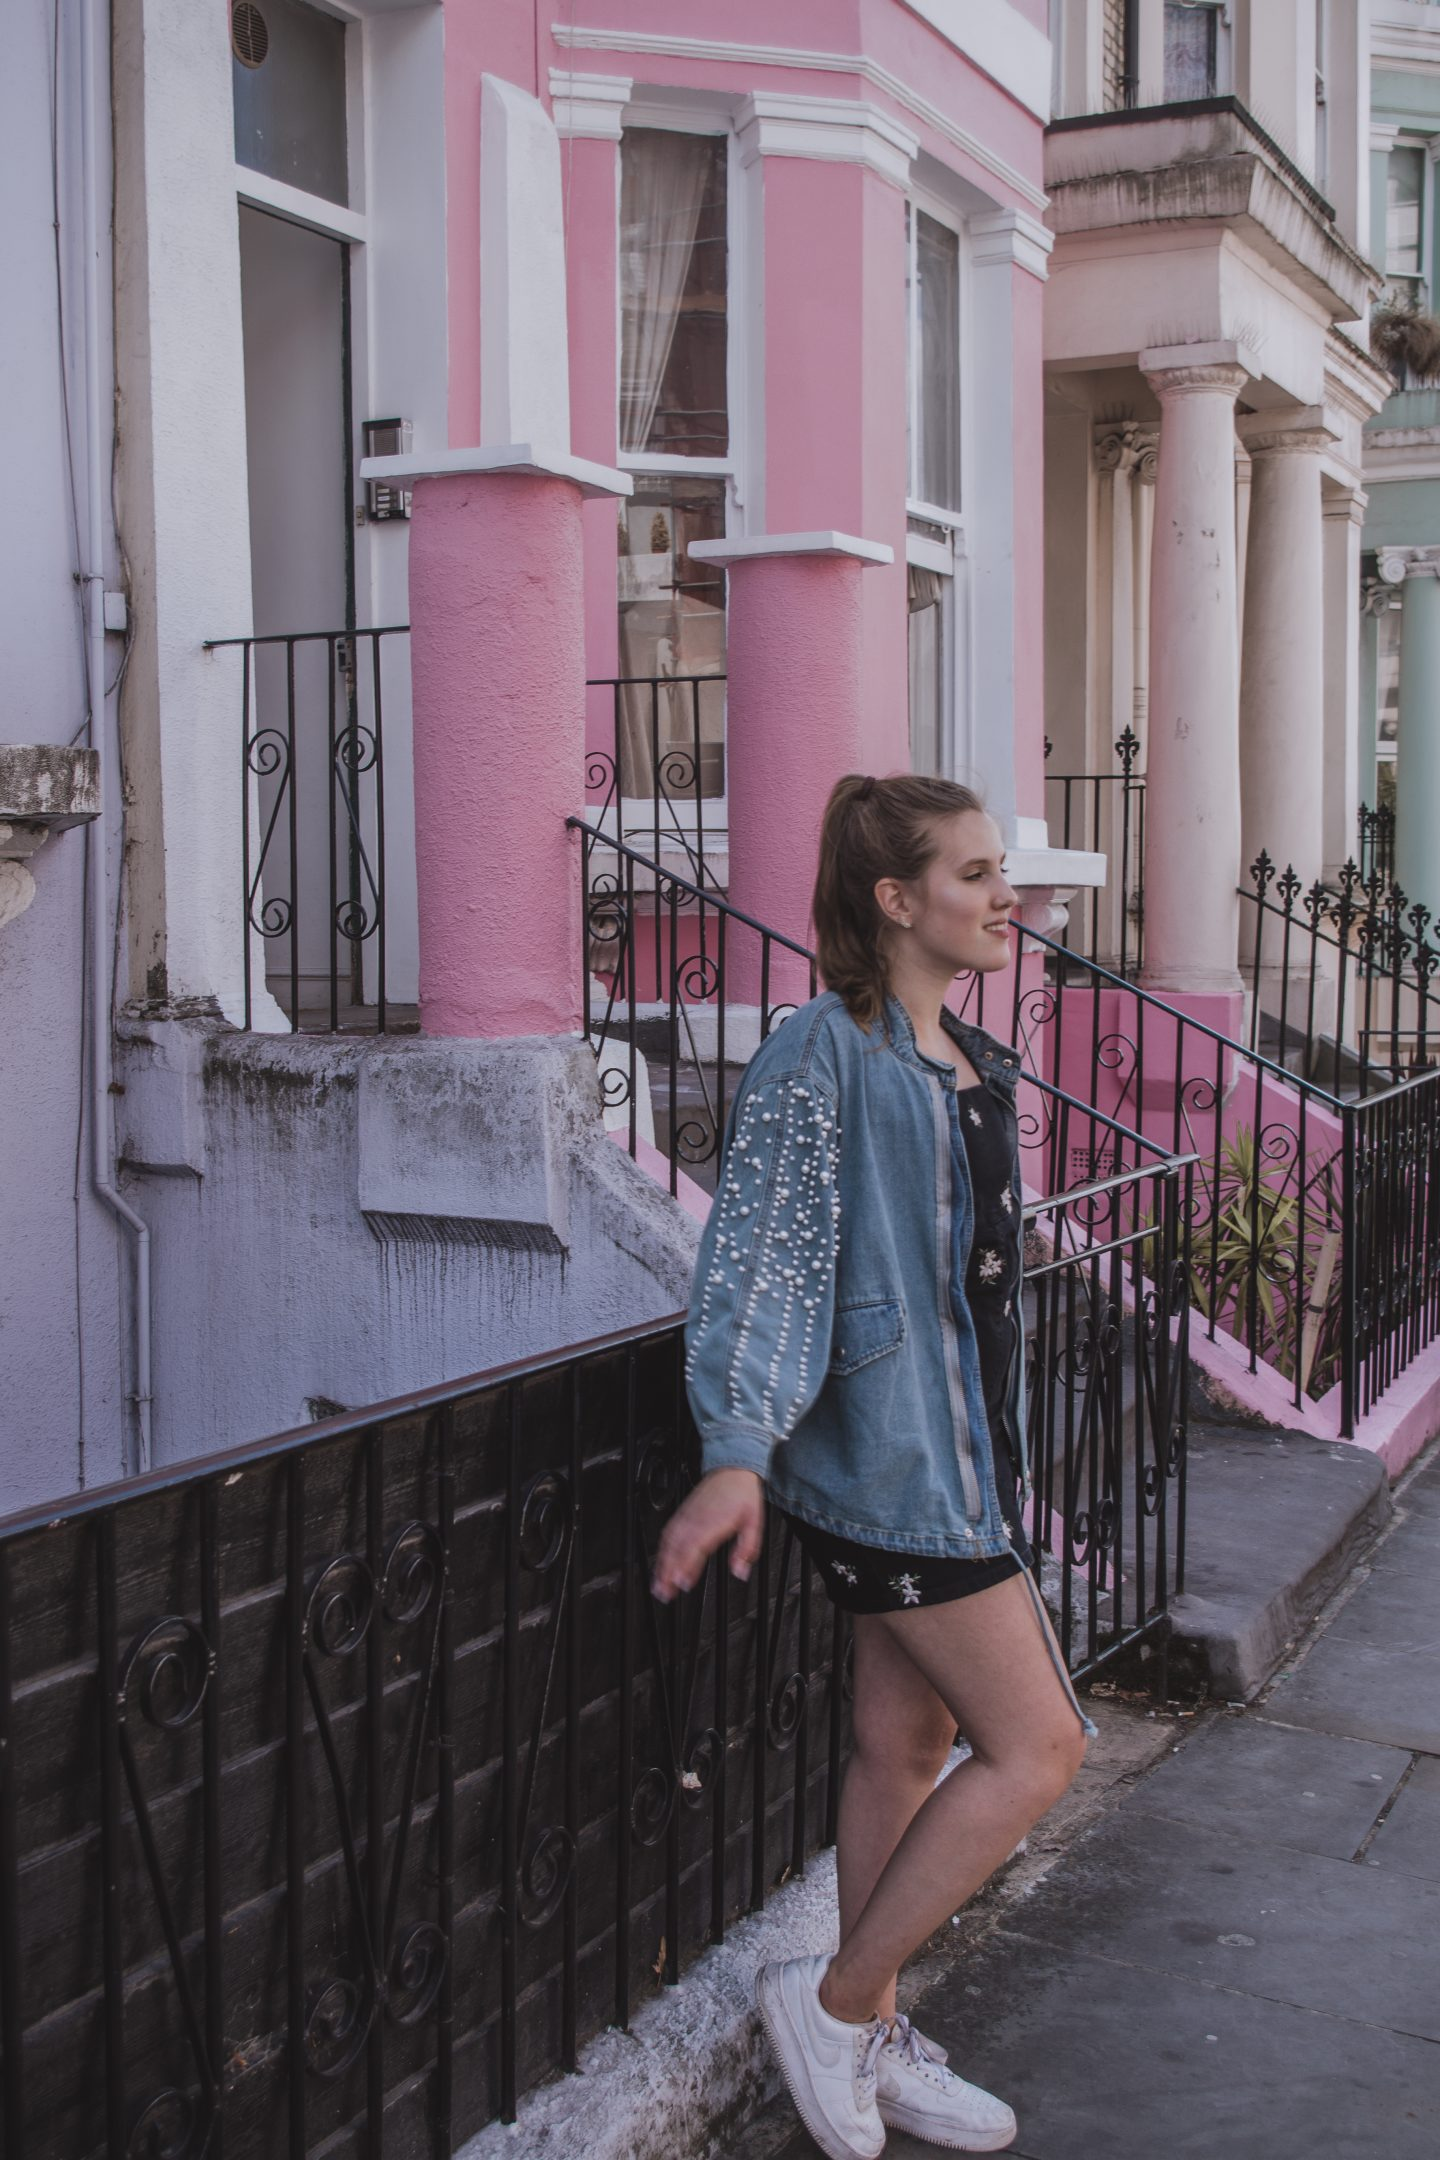 Denim Dress & where to go in Notting Hill